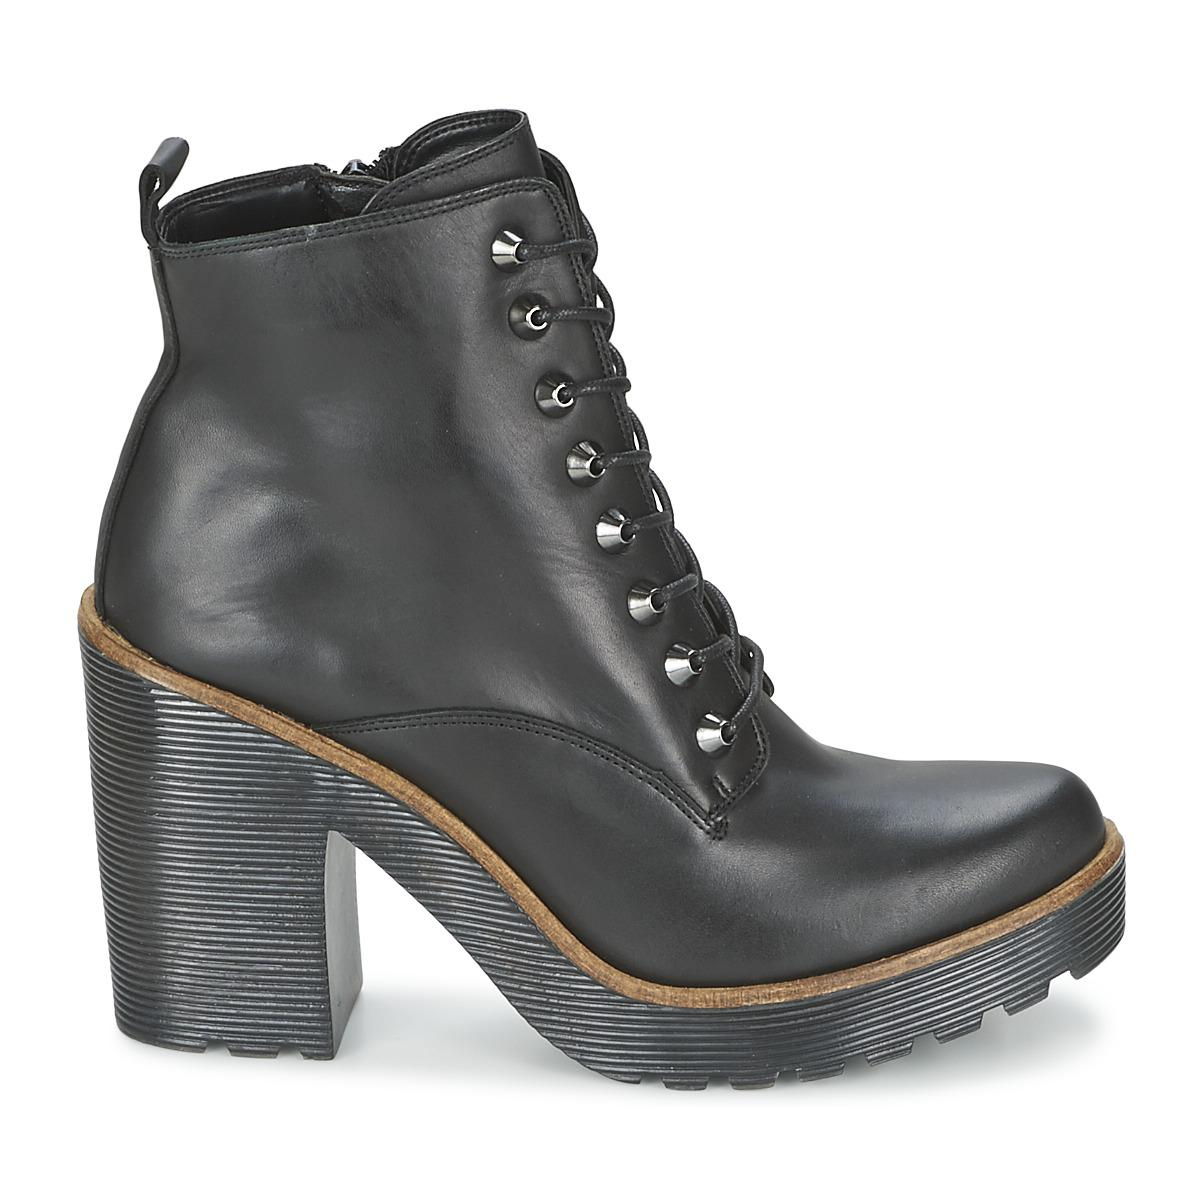 ALDO Leather Latte Low Ankle Boots in Black